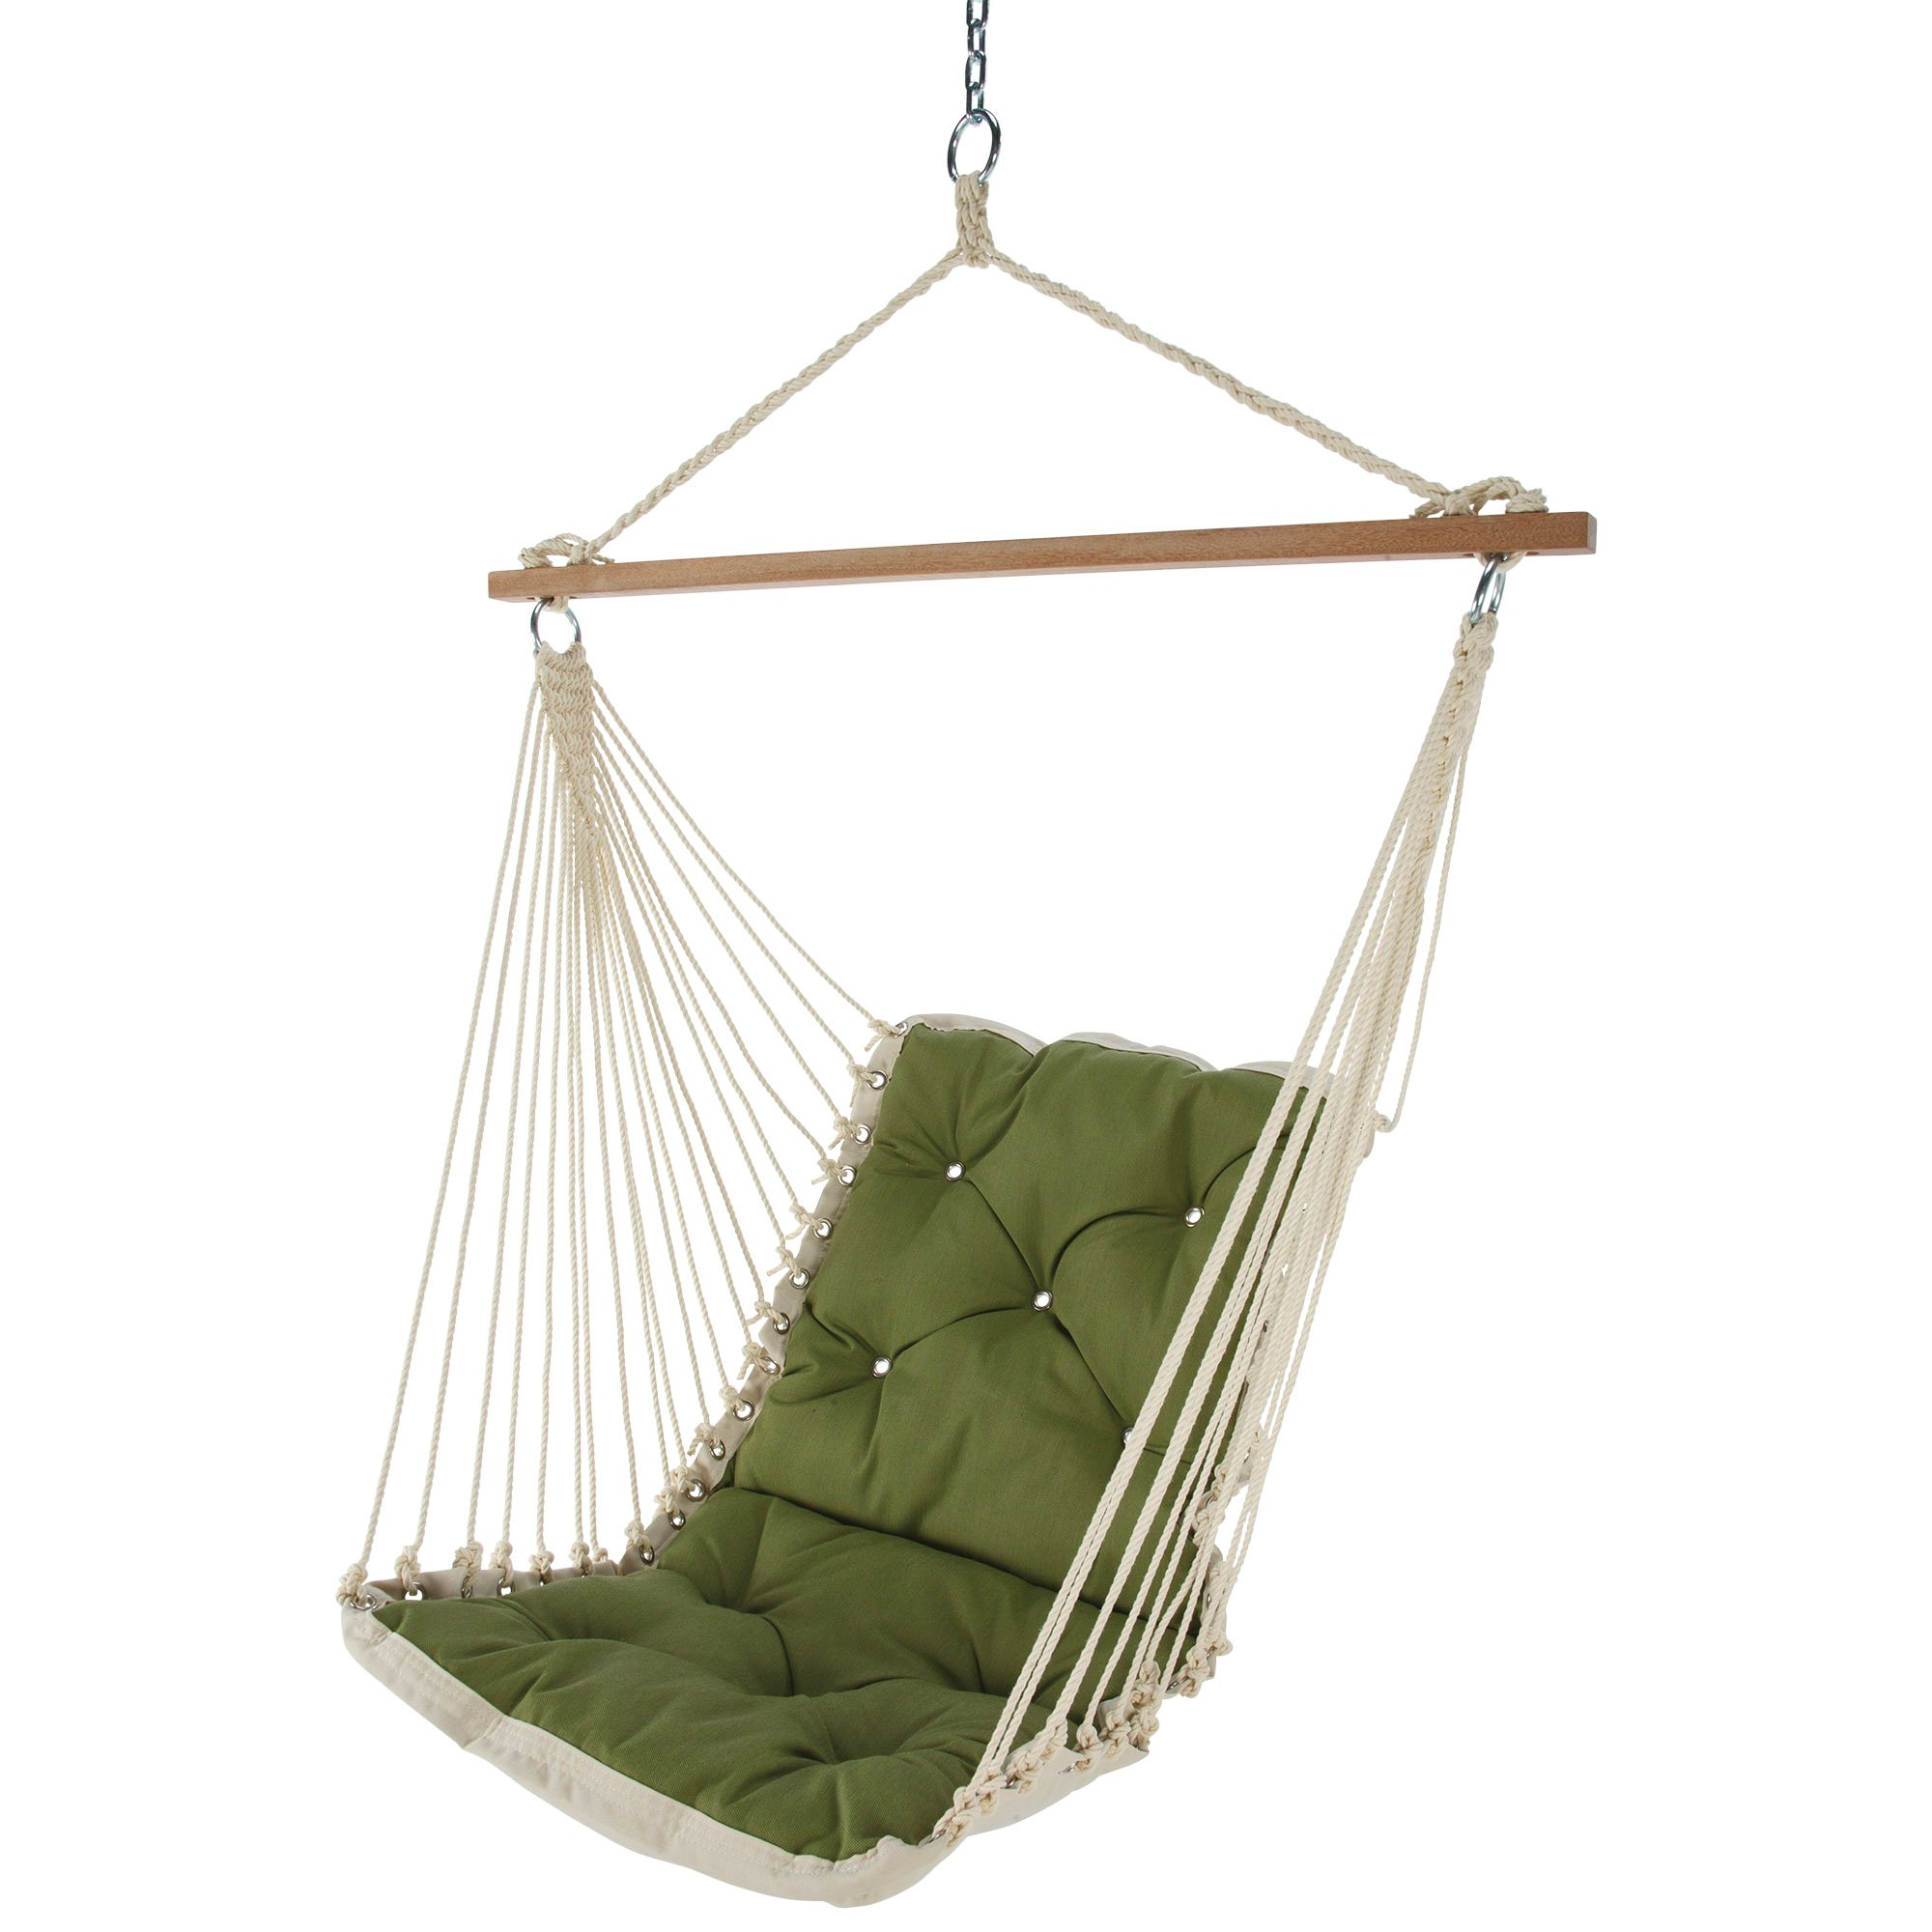 Tufted Hammock Chair by Hatteras Hammocks